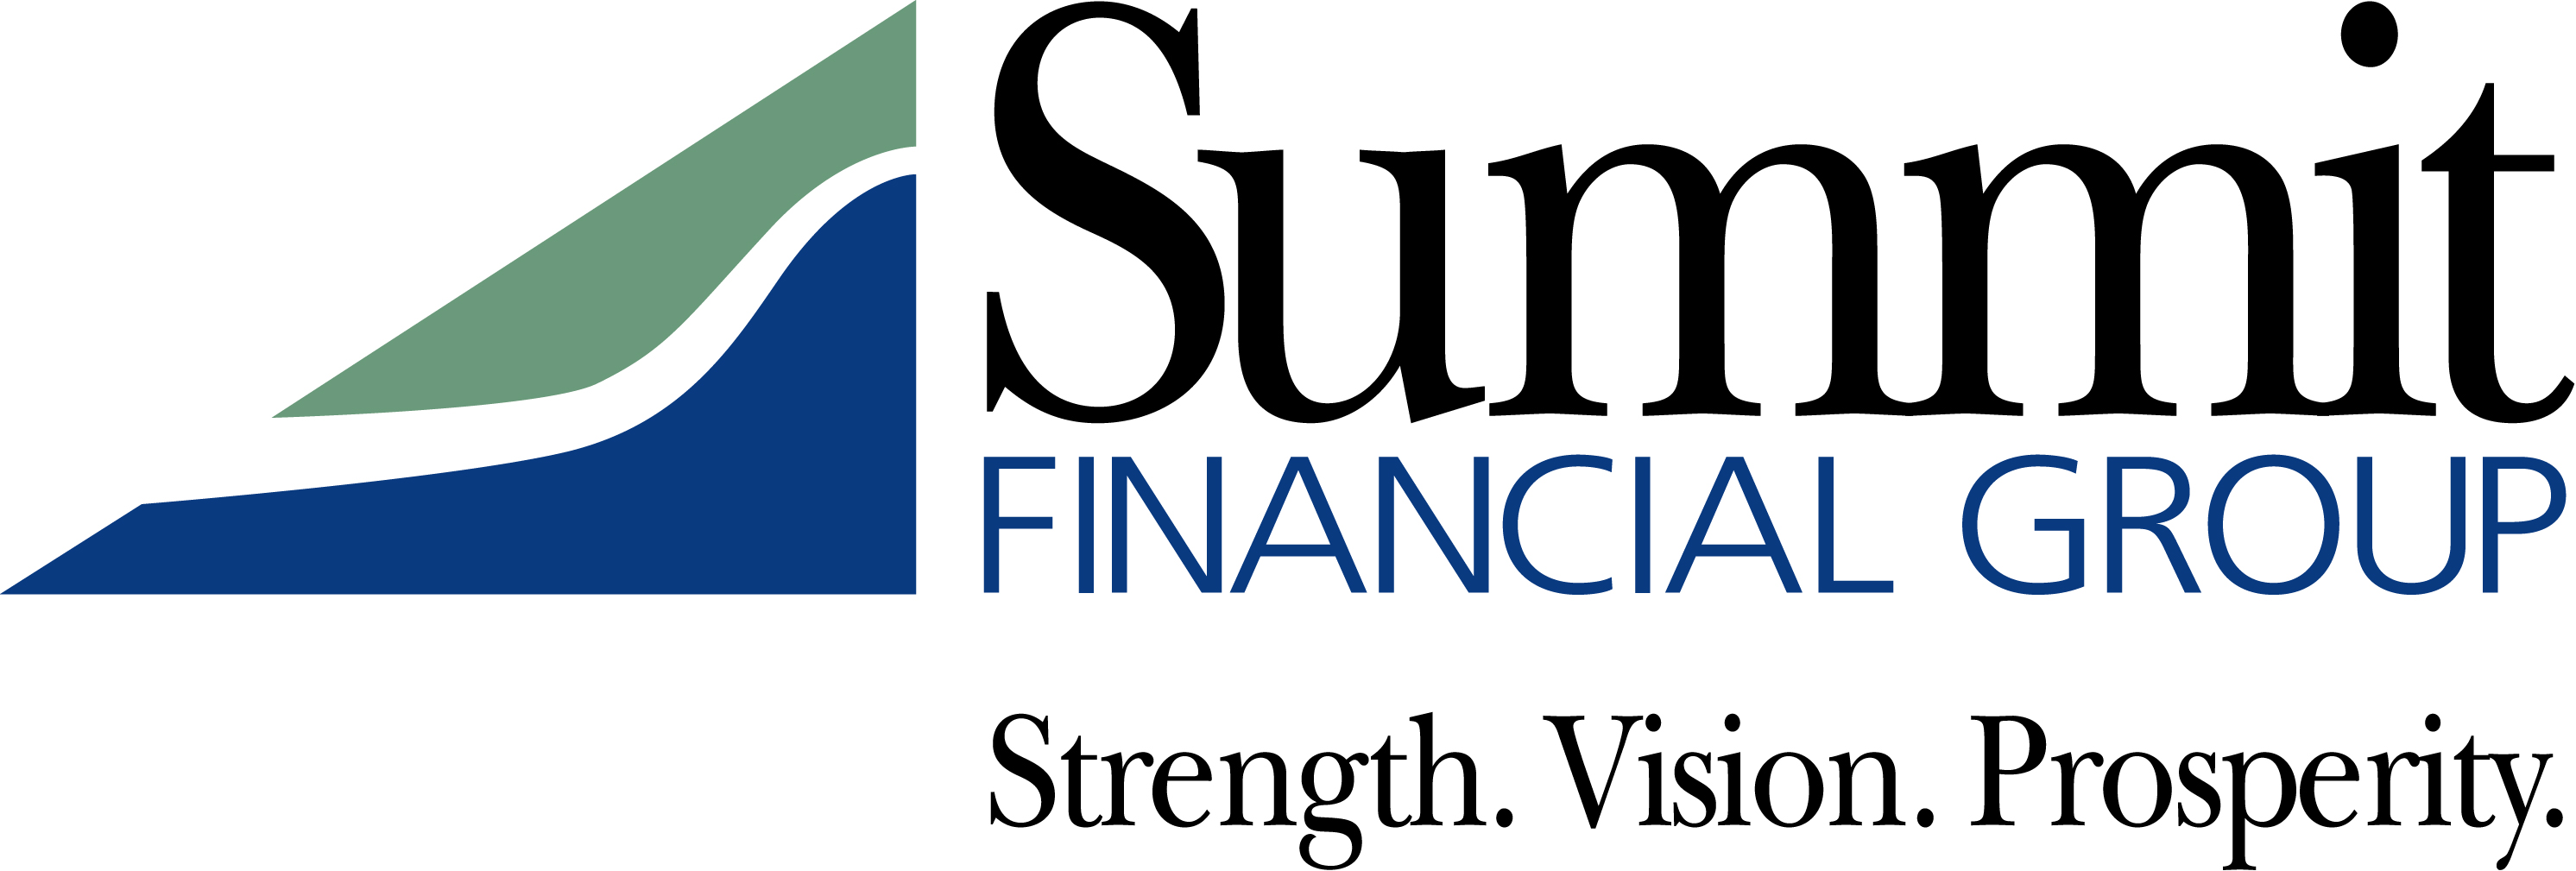 Summit Financial Group, Inc.